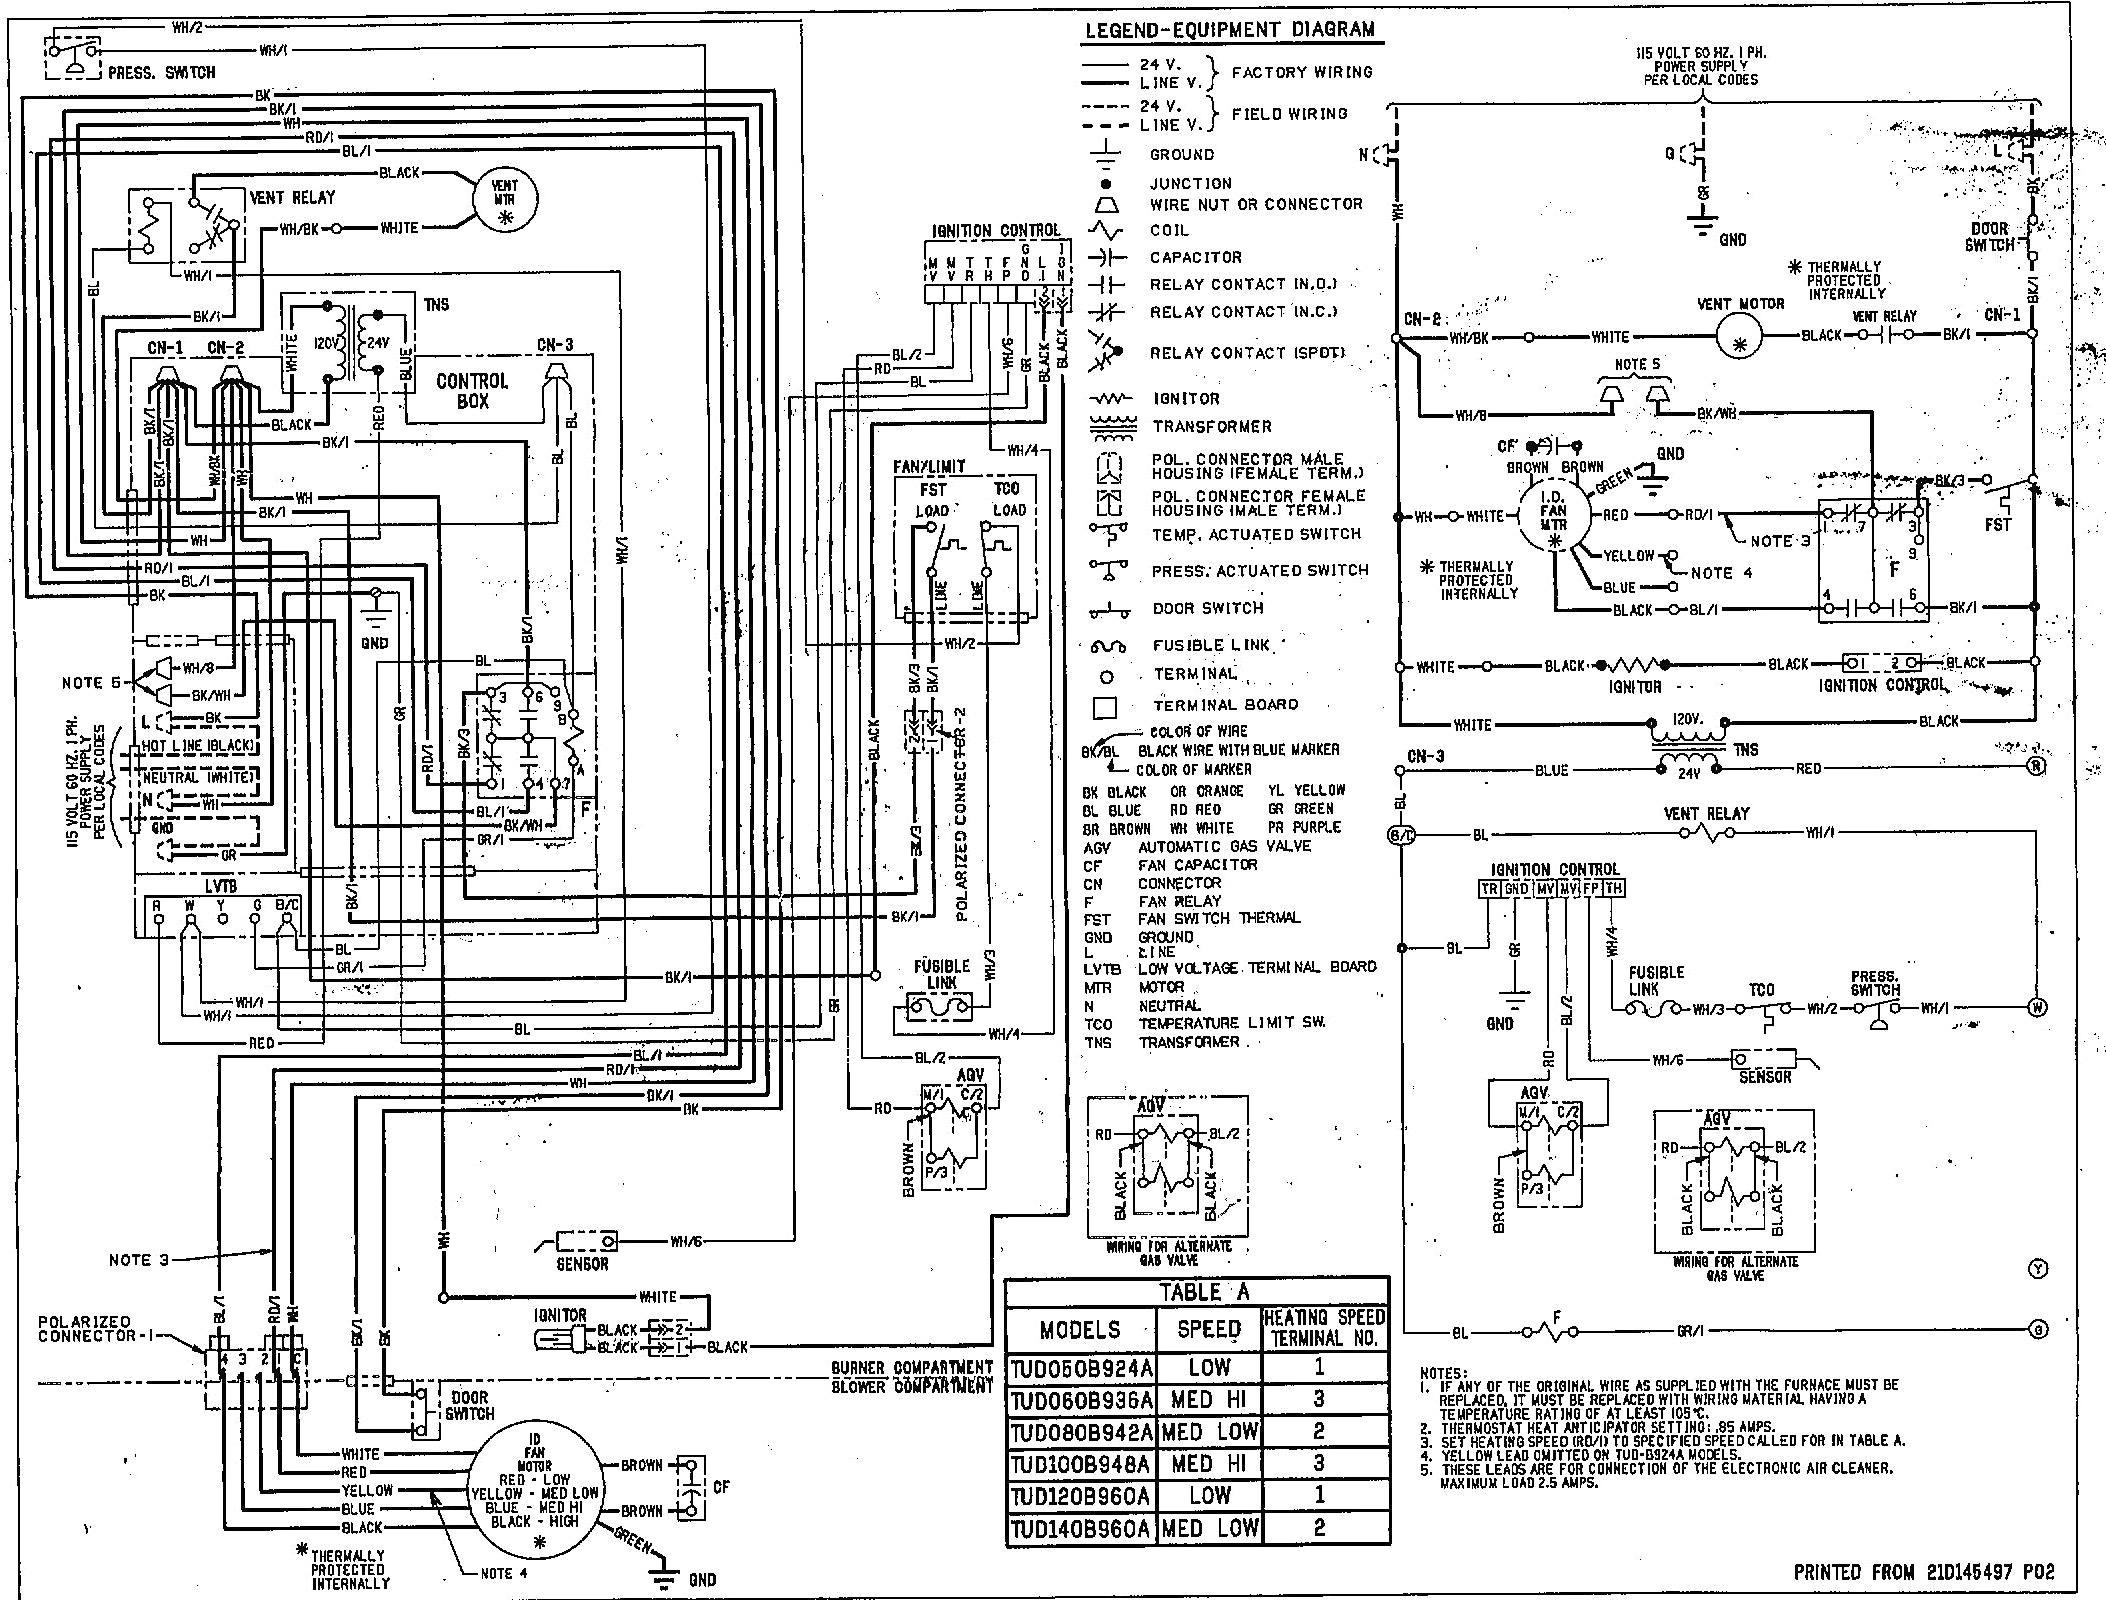 Free Hvac Wiring Diagrams Heater With Thermostat Schematic Symbol Get Image About Trane Furnace Diagram Rh Ricardolevinsmorales Com Basic Residential Color